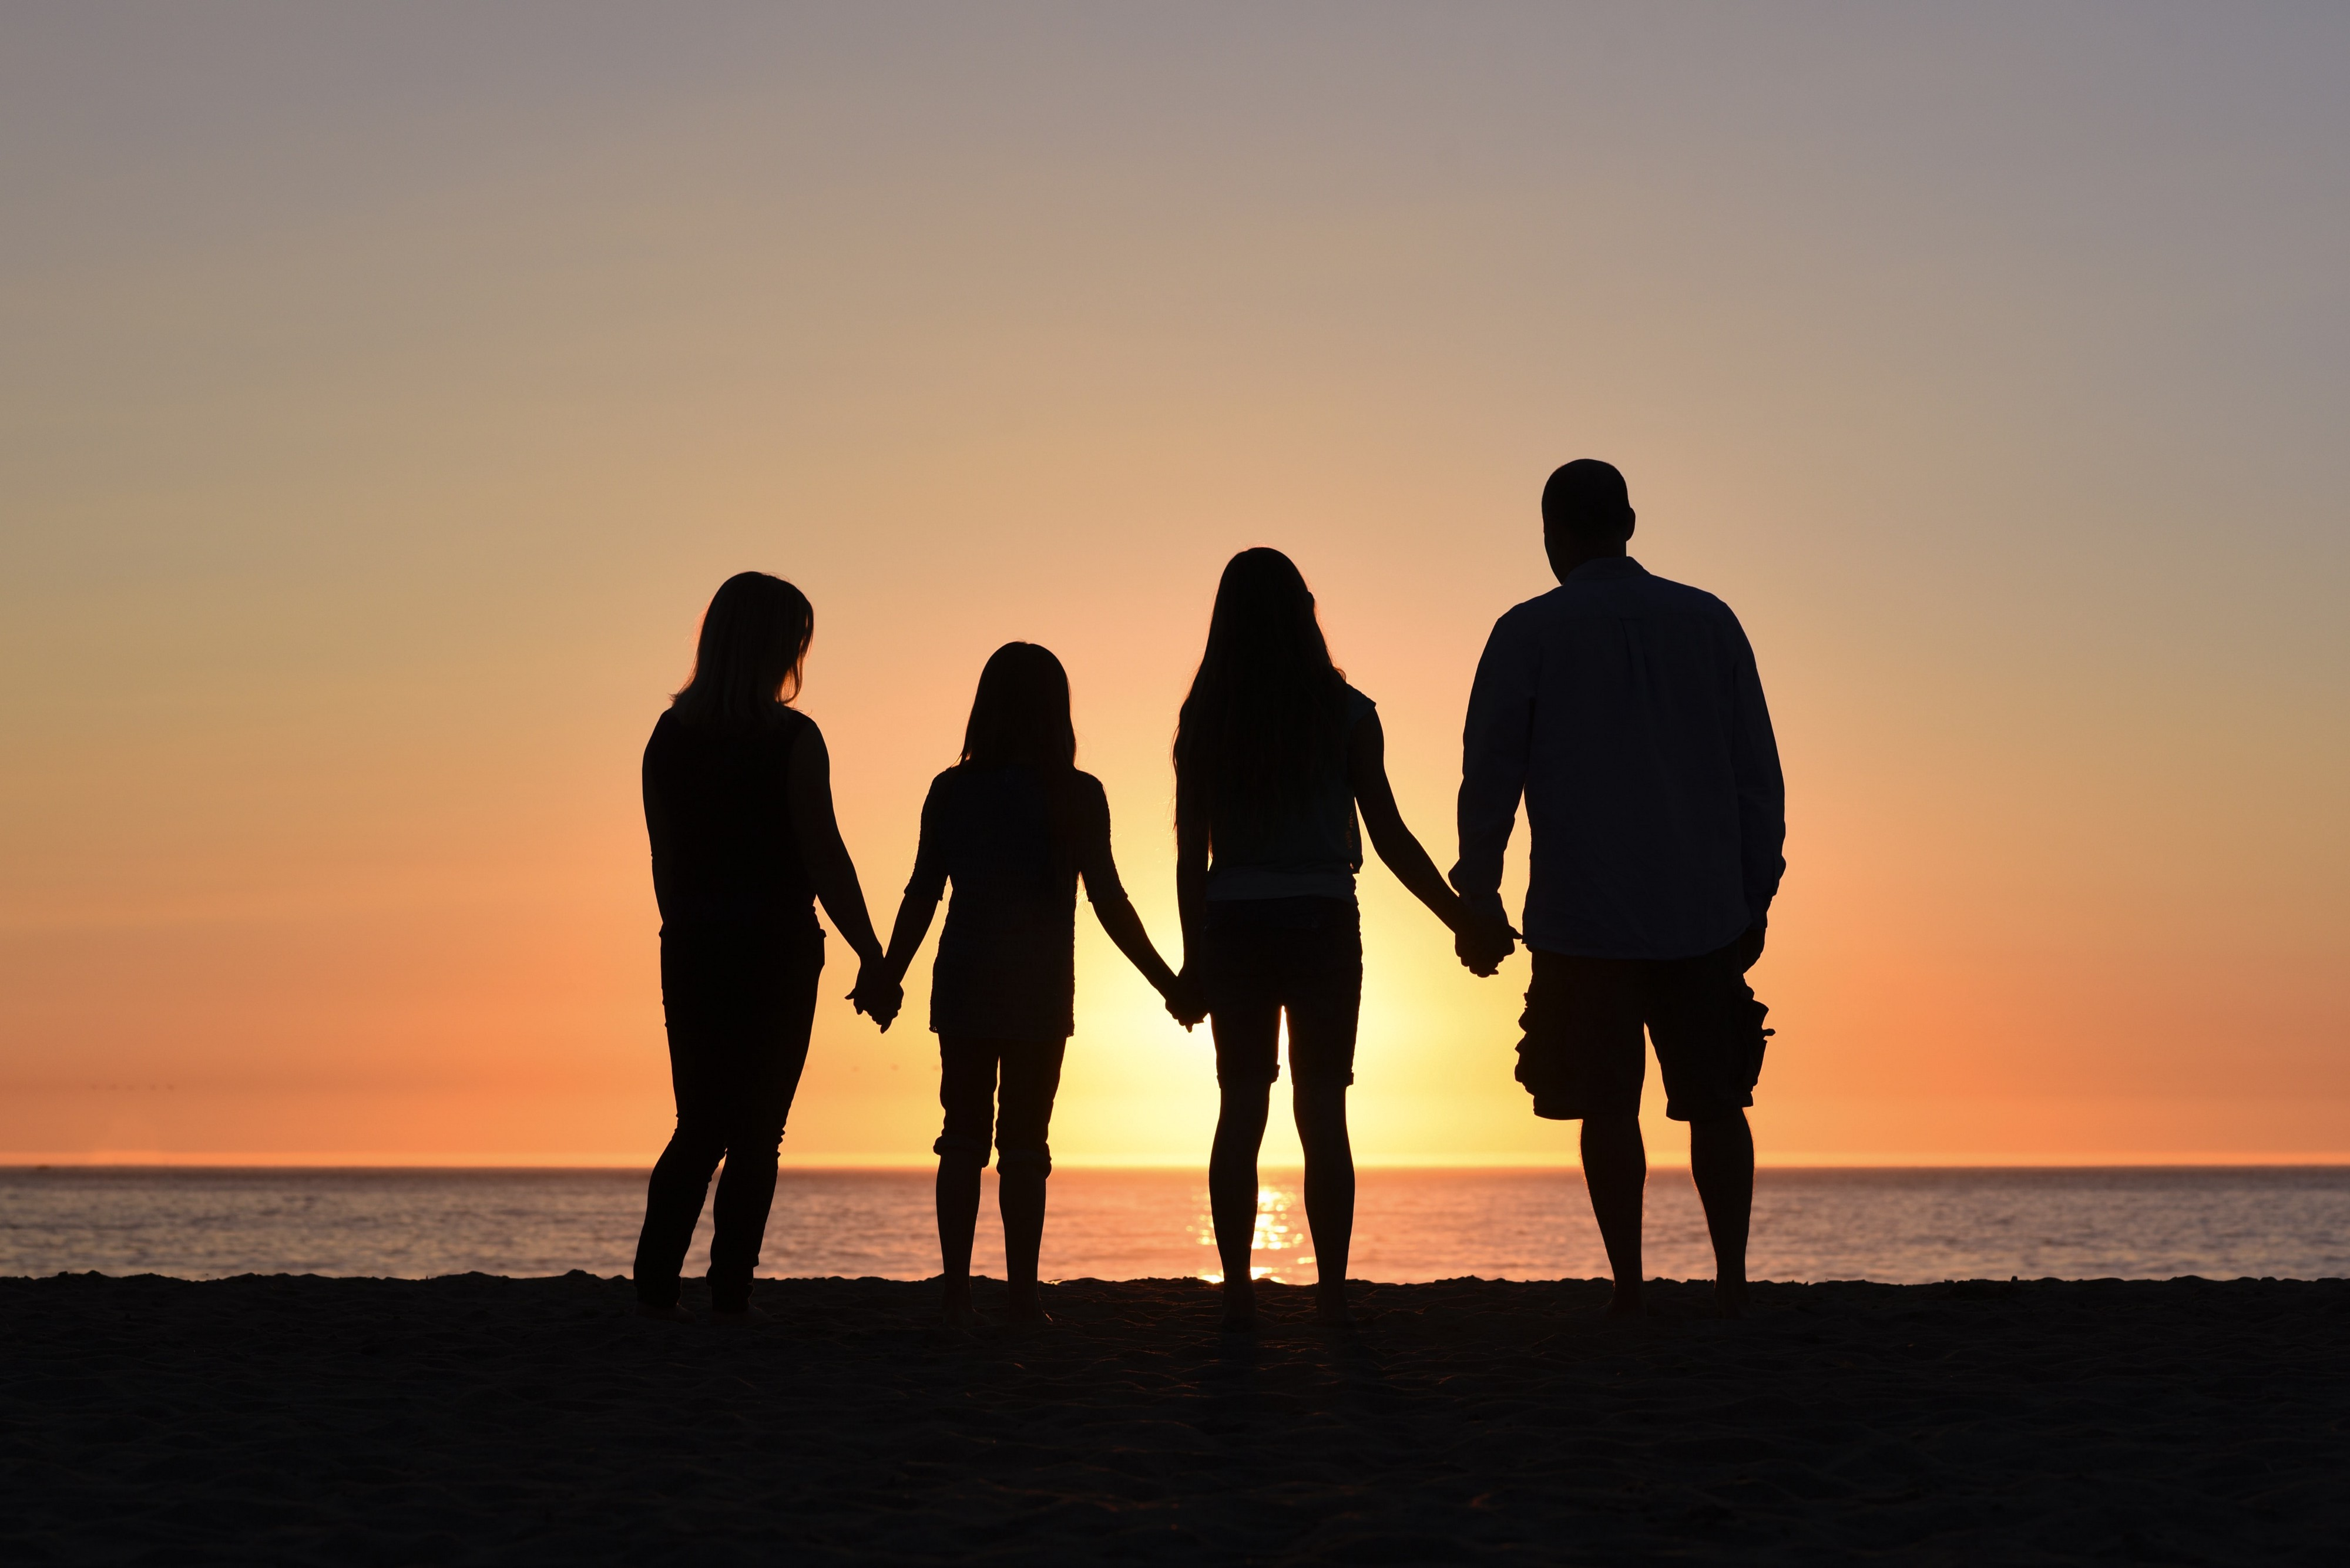 silouhette of family of four holding hands, standing on beach in front of the ocean at sunset